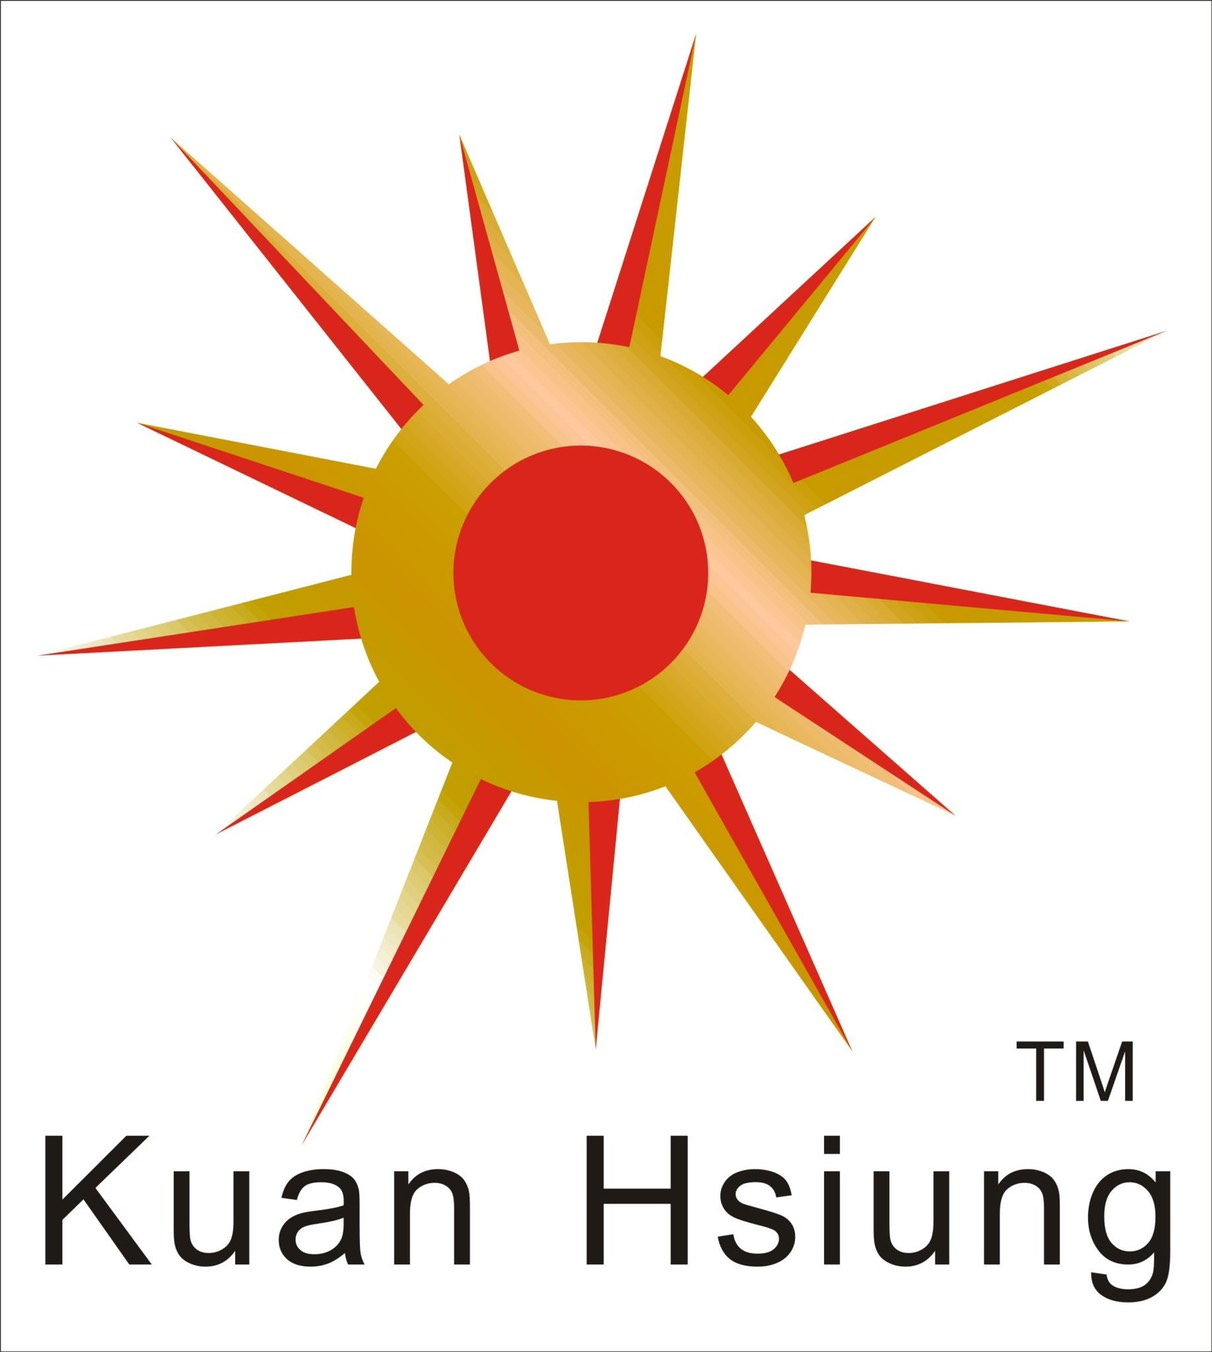 冠雄工業有限公司|KUAN HSIUNG INDUSTRIAL CO., LTD.